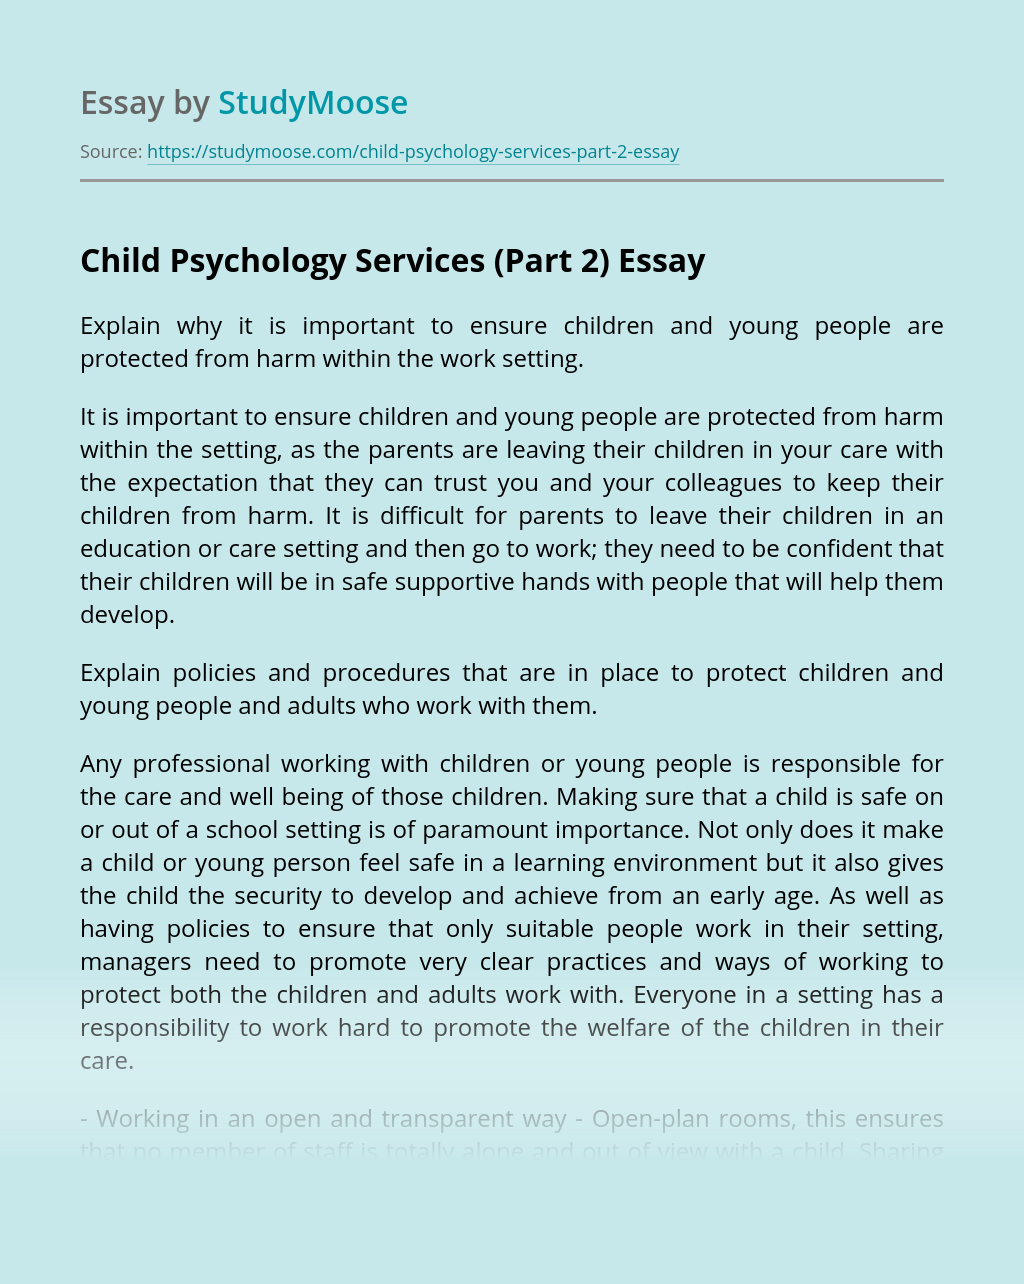 Child Psychology Services (Part 2)